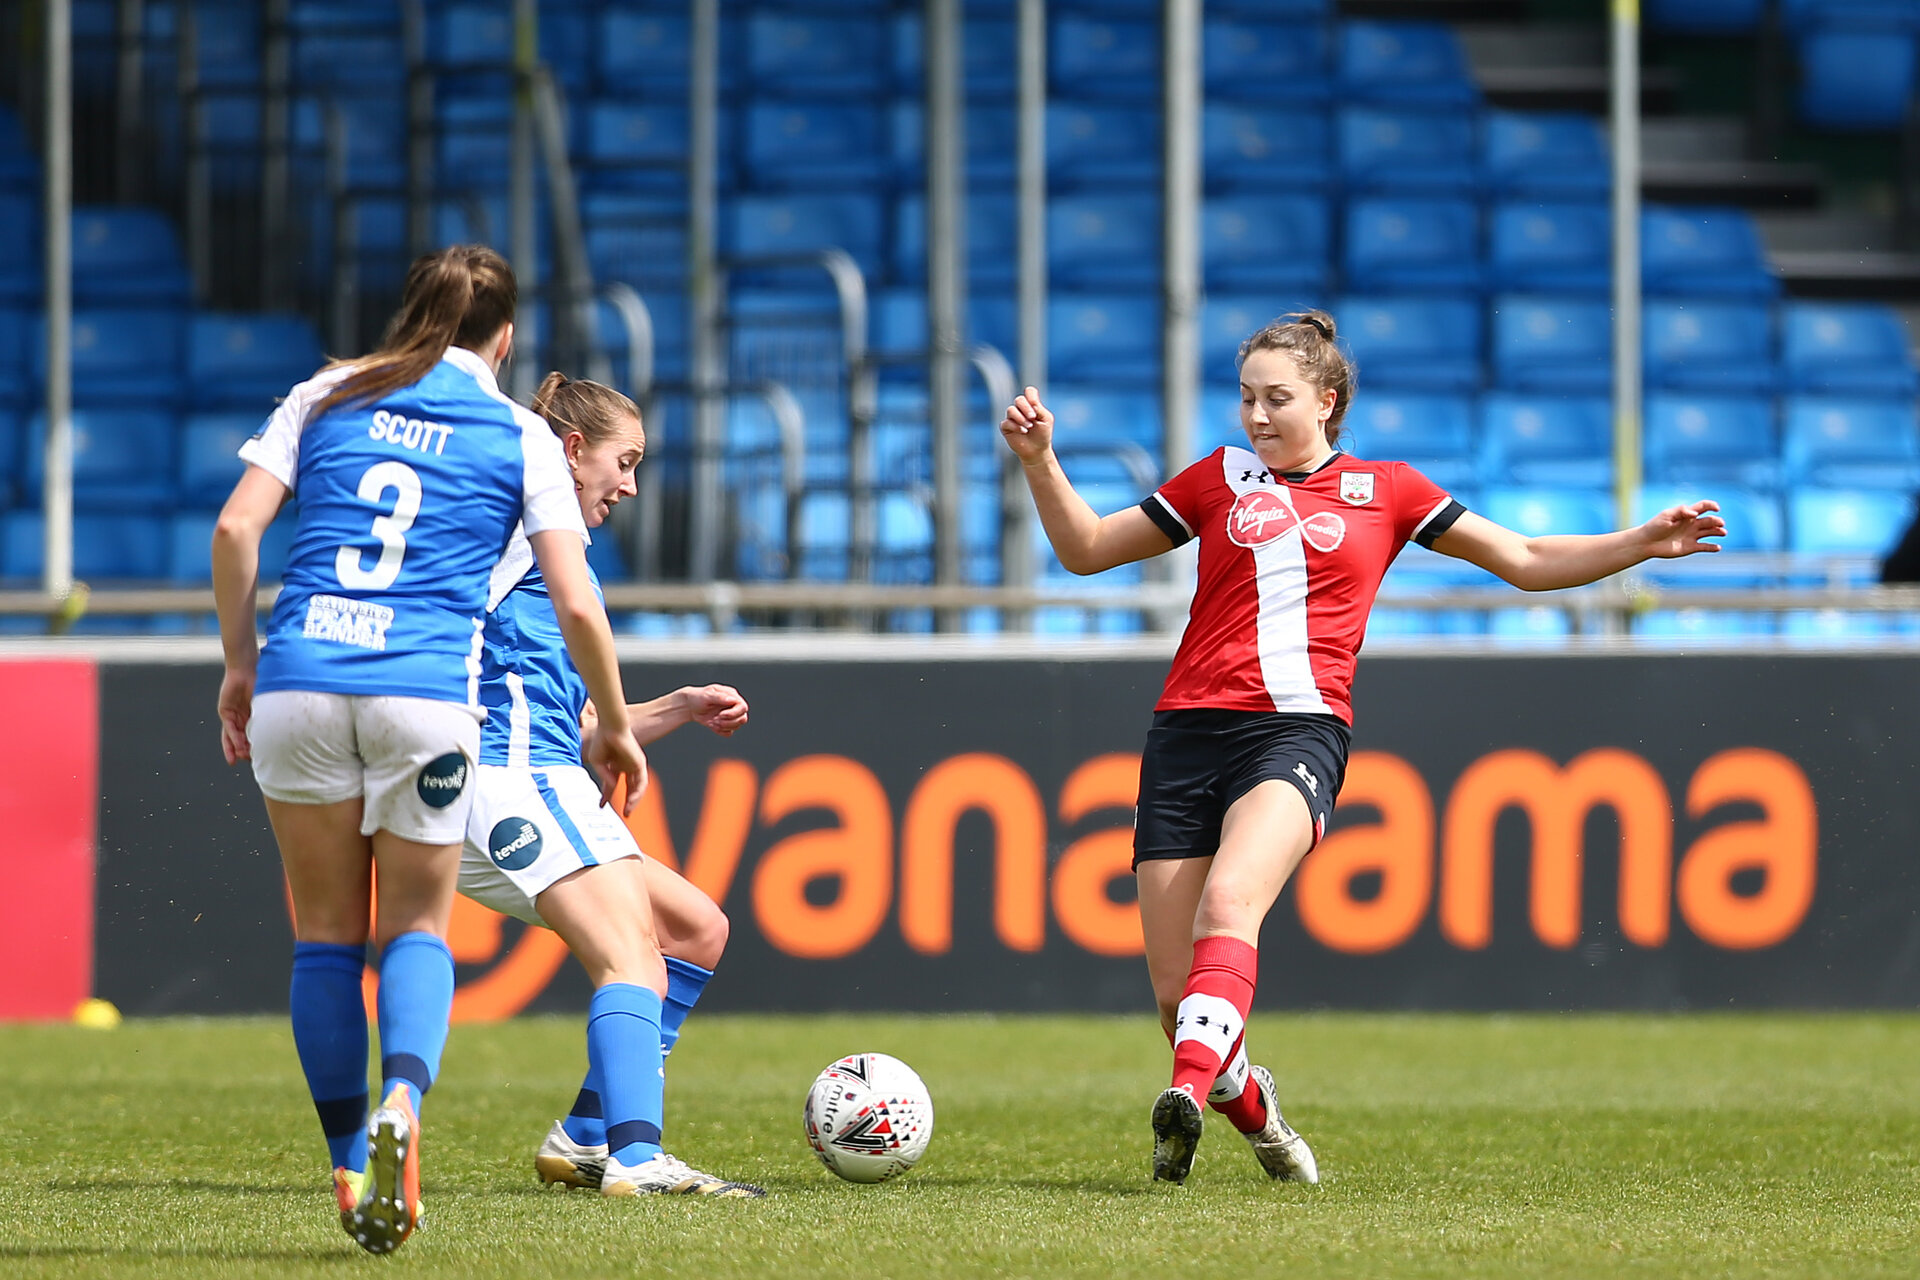 SOLIHULL, ENGLAND - MAY 16:  during Vitality Women's FA Cup 5th Round match between Birmingham City Women and Southampton Women at Damson Park on May 16, 2021 in Solihull, England. Sporting stadiums around the UK remain under strict restrictions due to the Coronavirus Pandemic as Government social distancing laws prohibit fans inside venues resulting in games being played behind closed doors.  (Photo by Isabelle Field/Southampton FC via Getty Images)